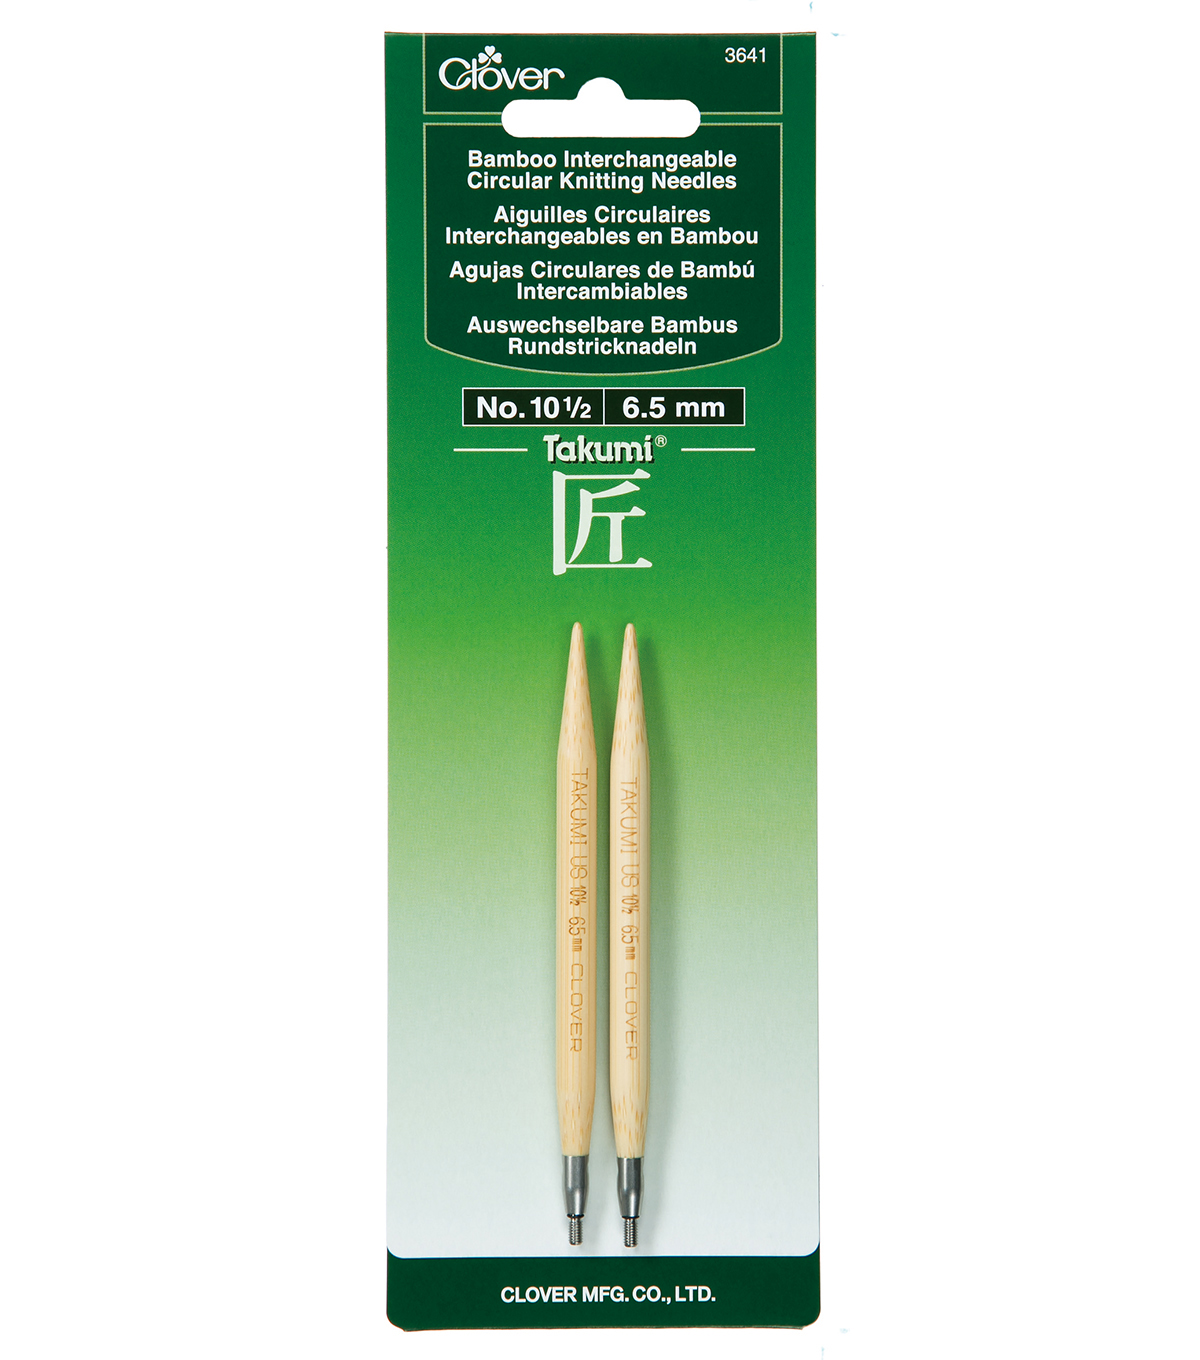 Clover Takumi Interchangeable Circular Knitting Needles Size 10.5/6.5mm